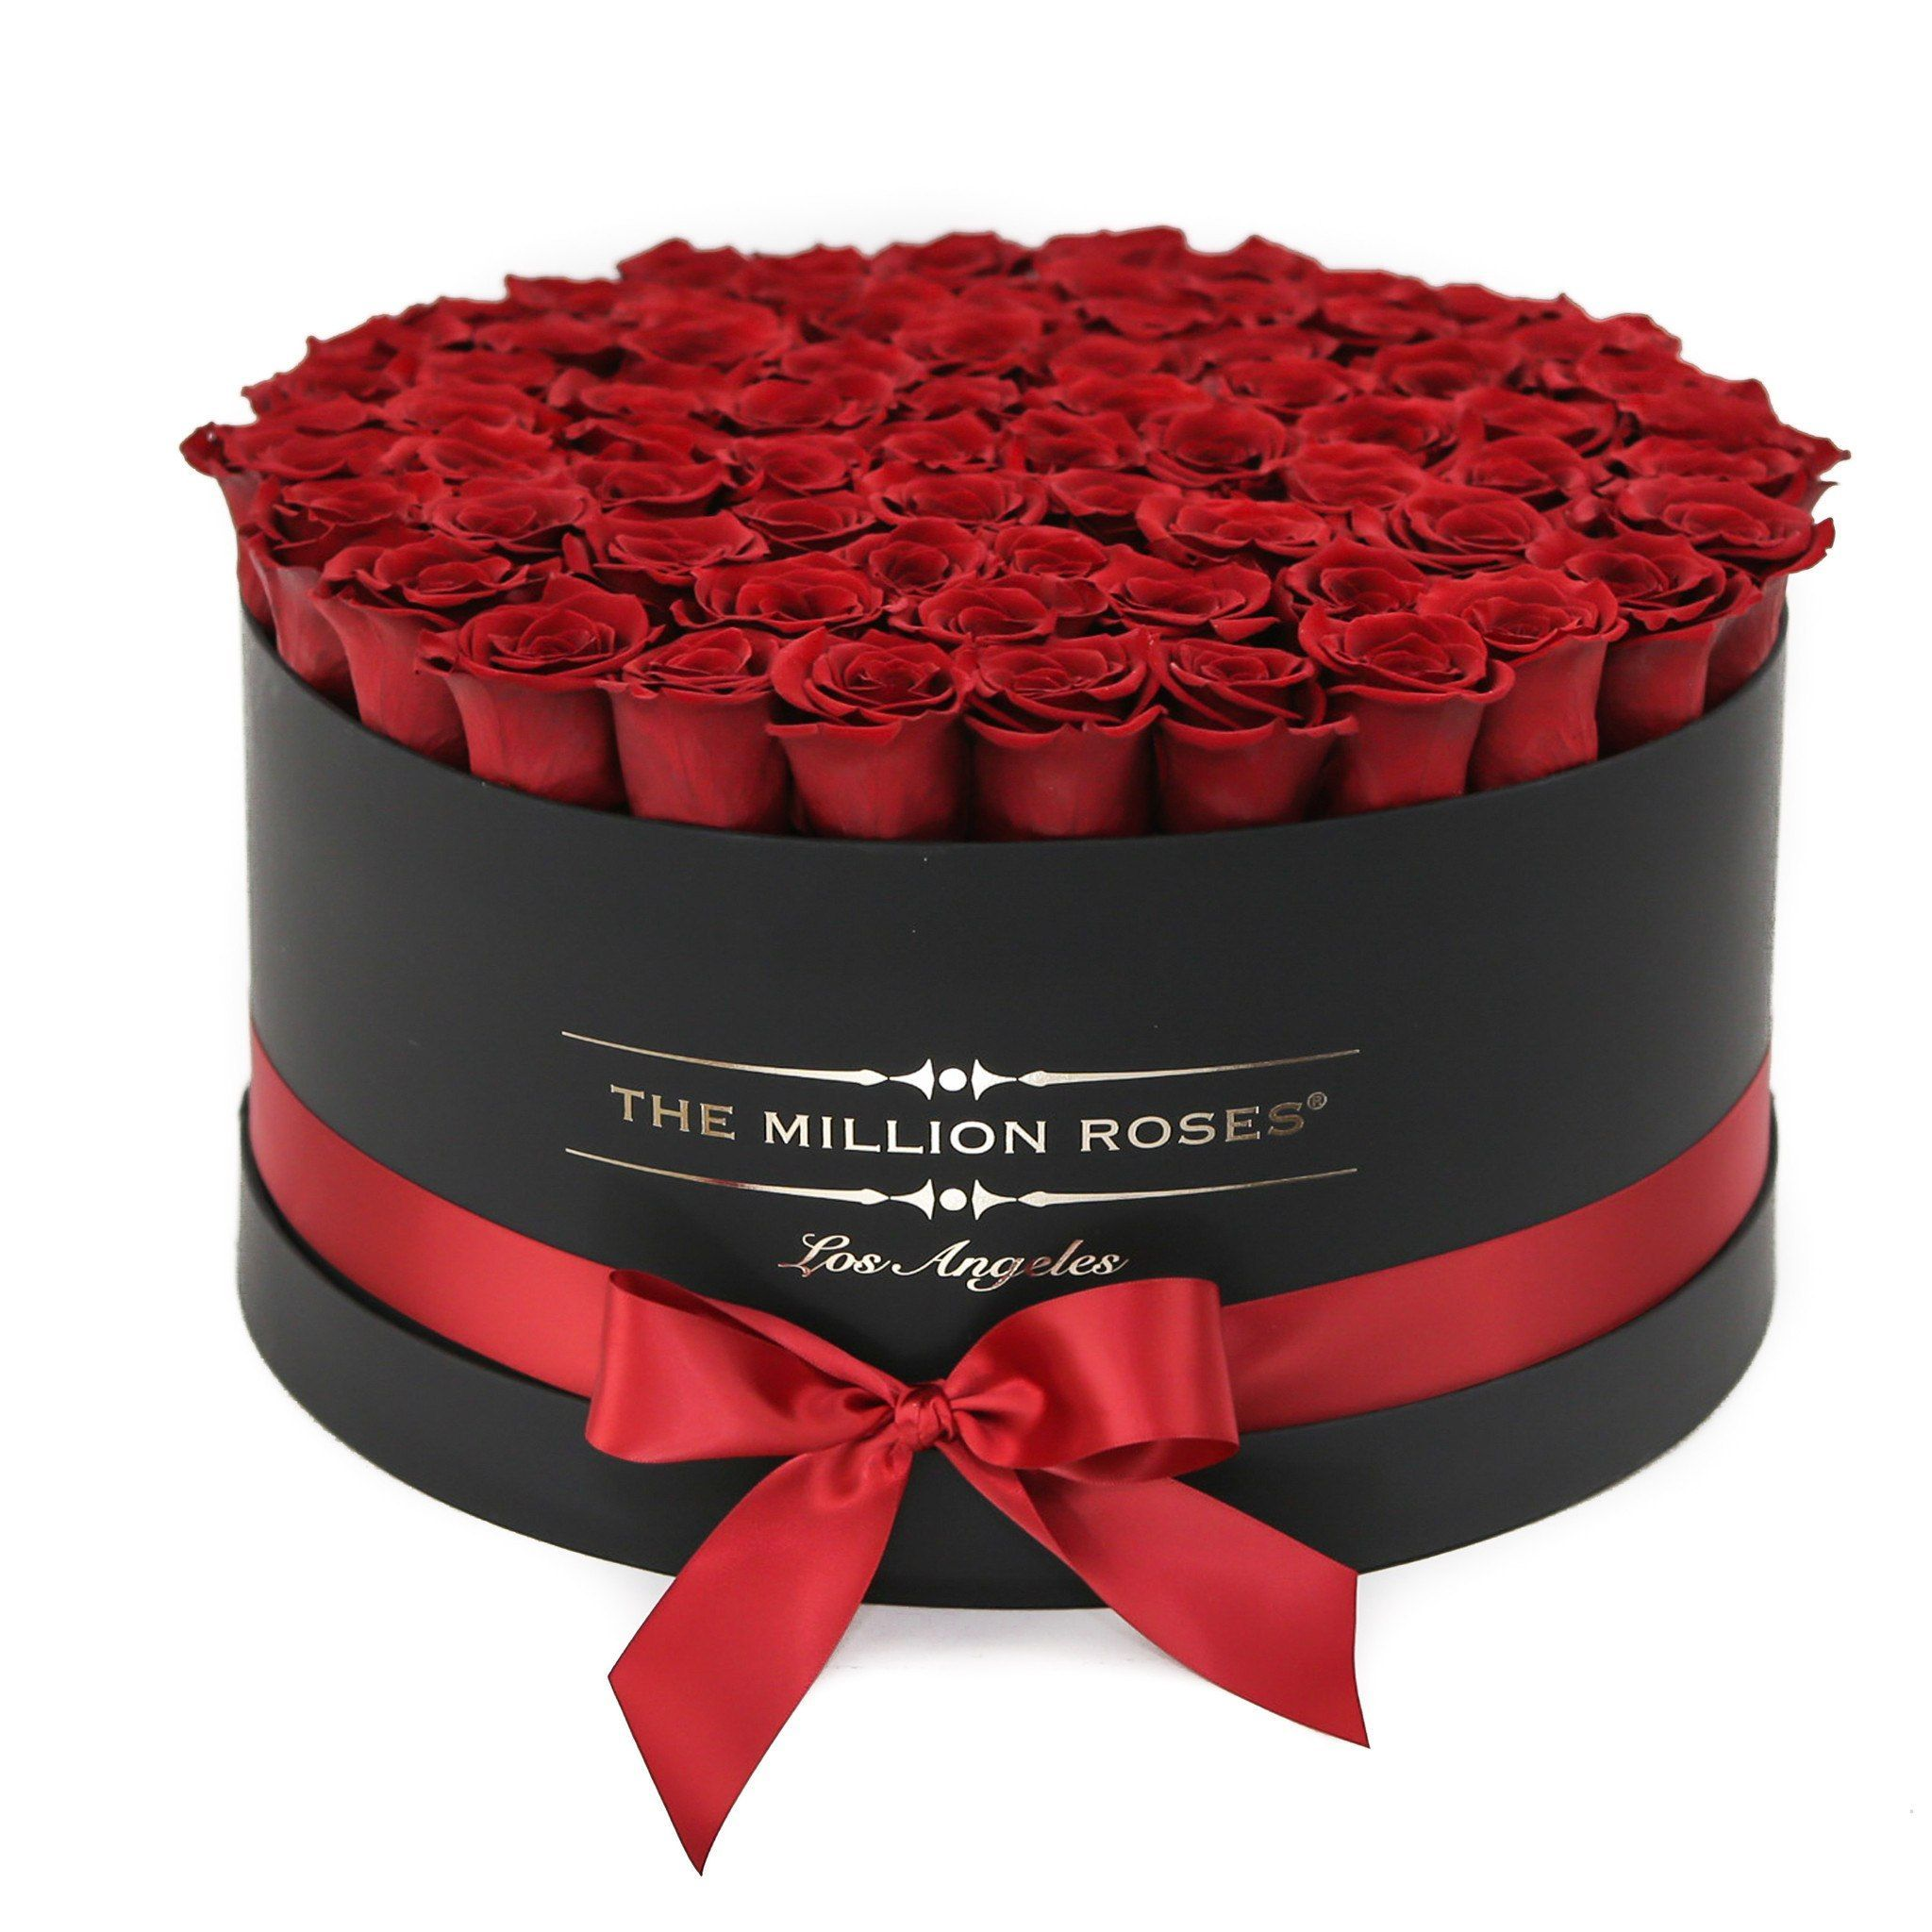 My Lasting Bouquet Real Roses That Last A Year Roses Luxury My Lasting Bouquet Rose